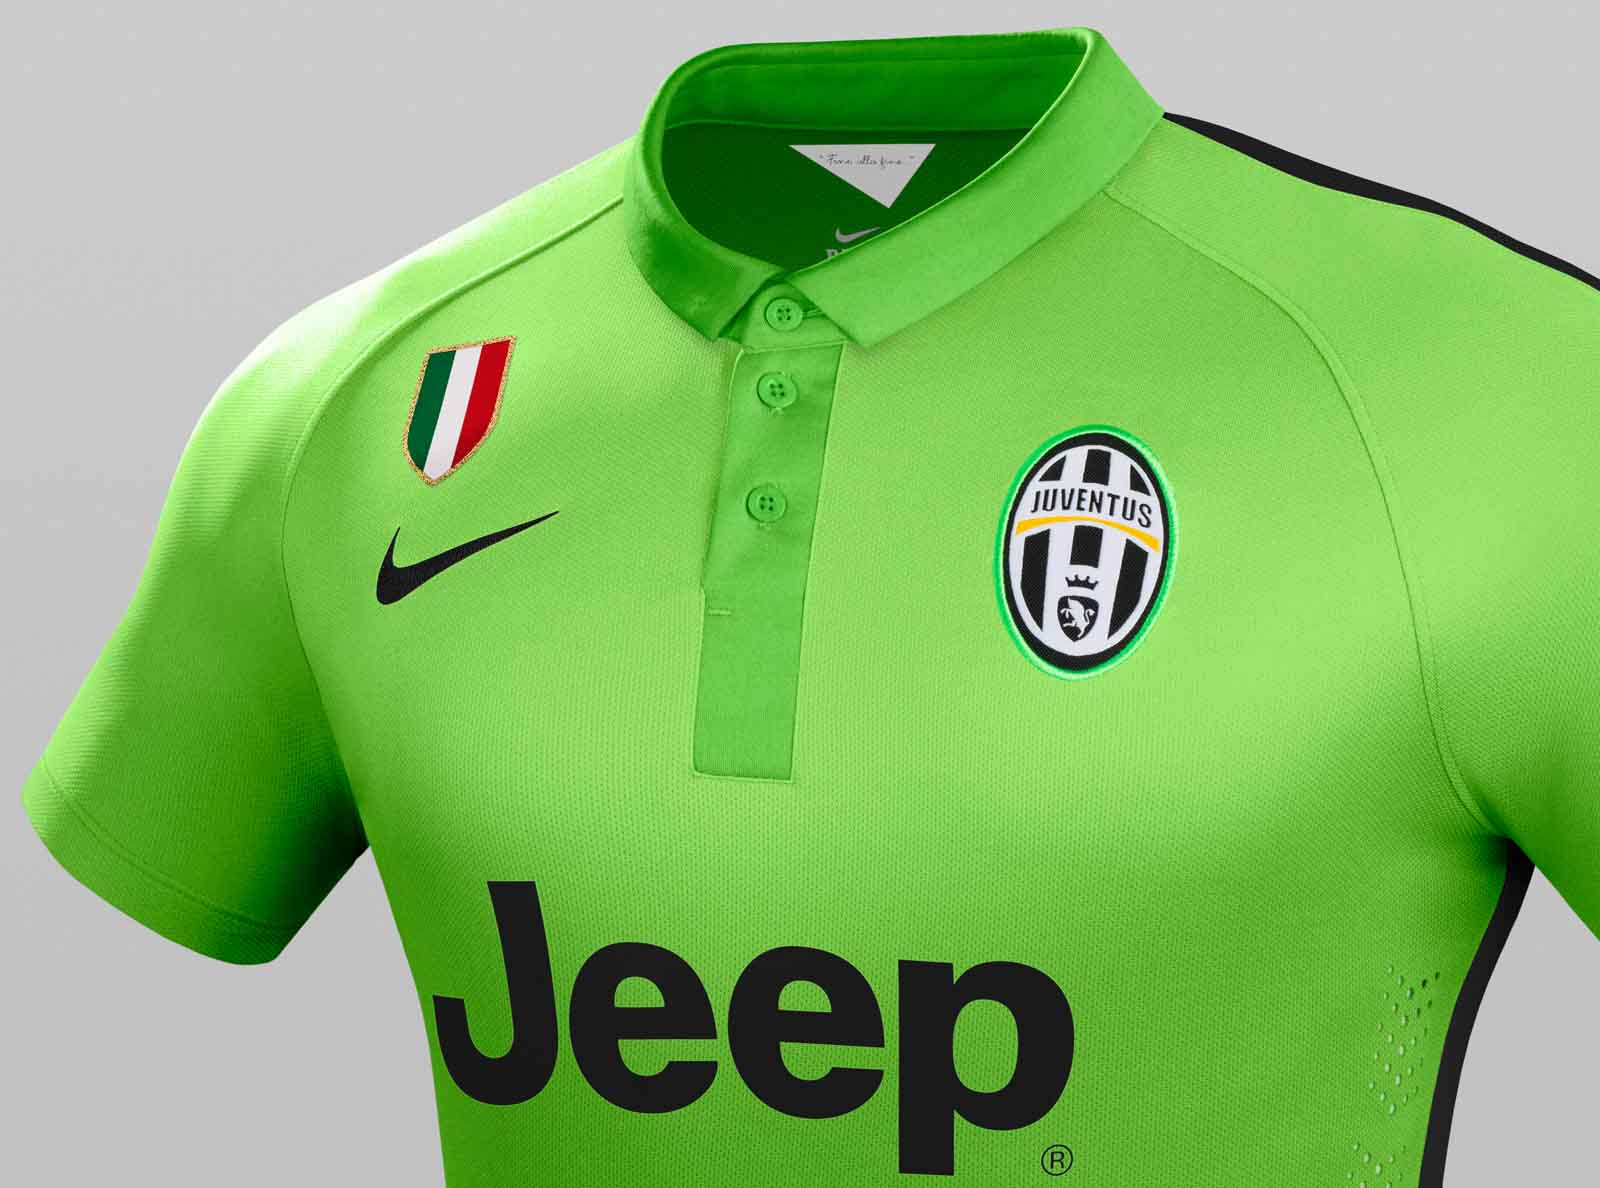 quality design 31324 4c51a juventus 2015 away kit on sale > OFF33% Discounts